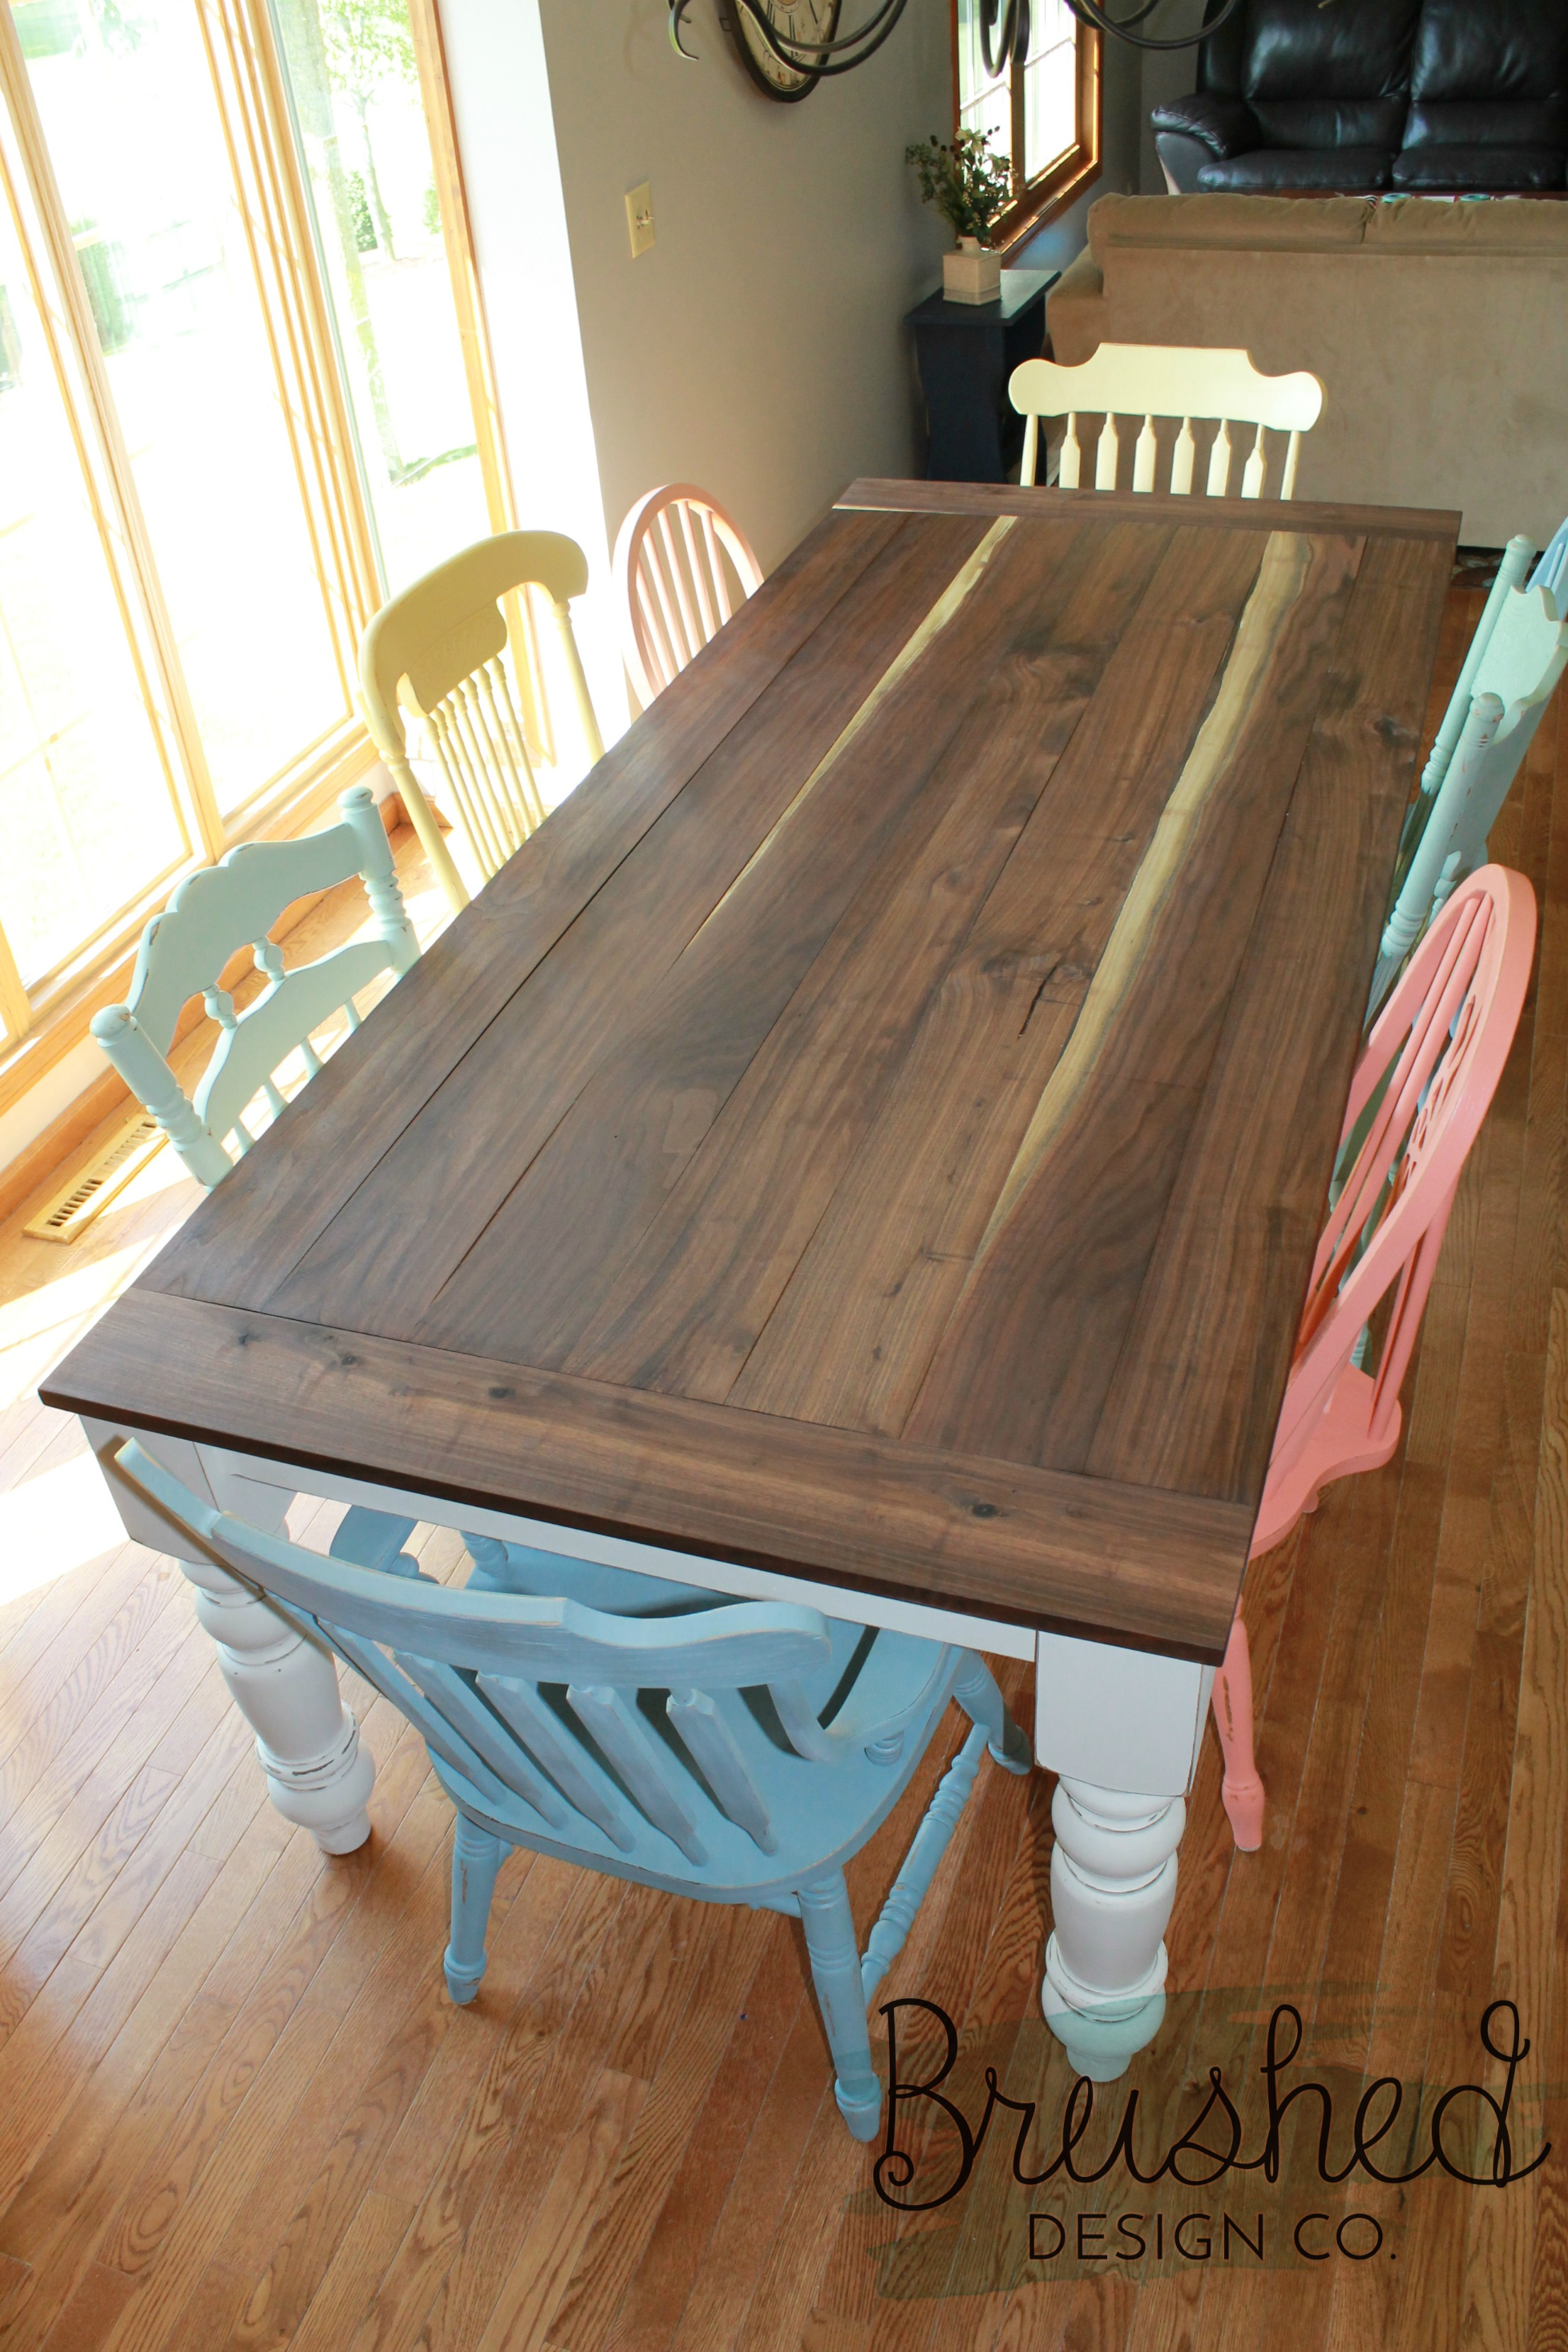 DIY Farmhouse Table and Chairs - Brushed Design Co.